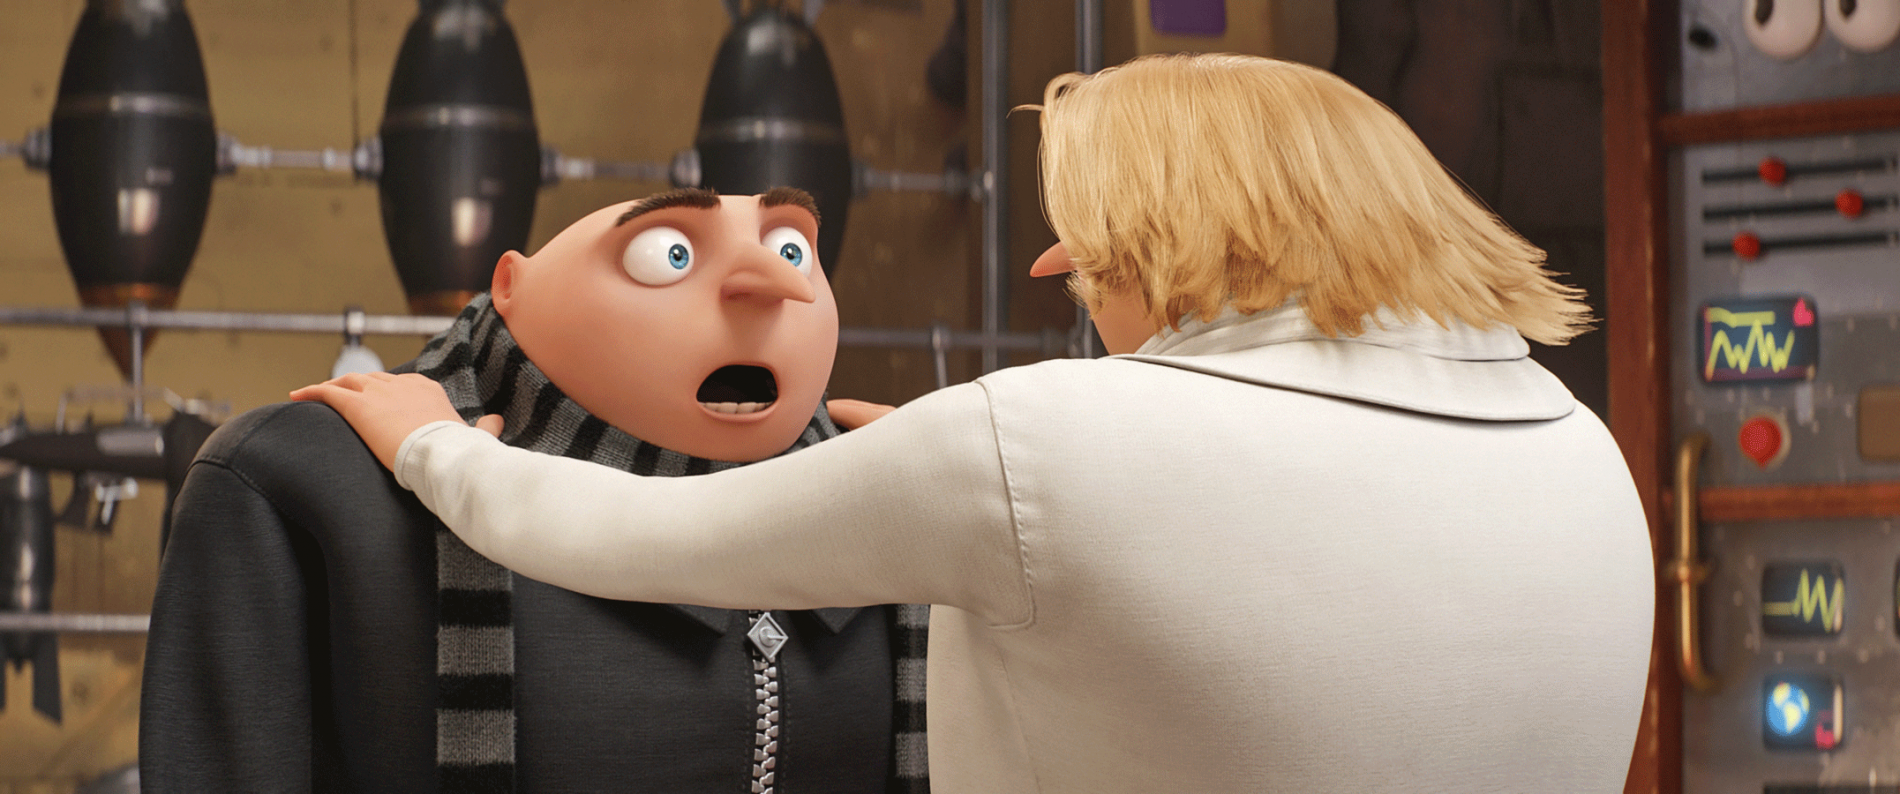 Despicable Me 3 - Photo 4